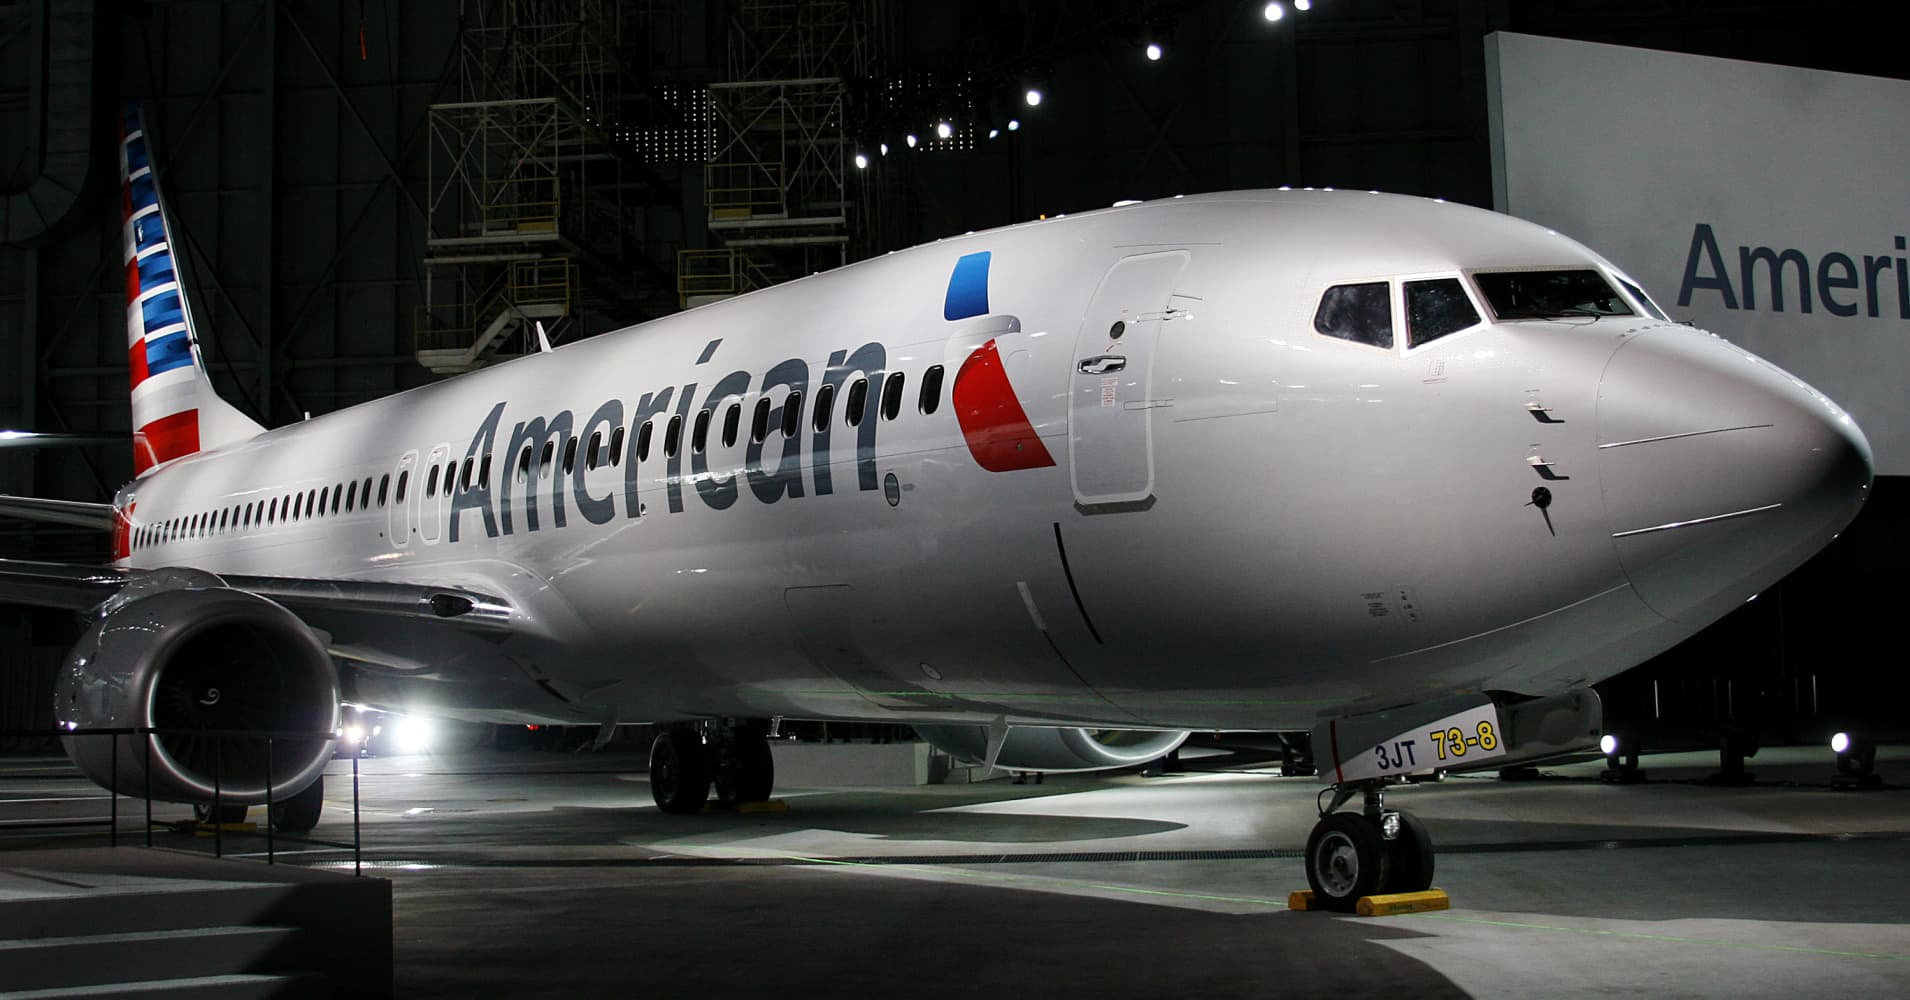 American Airlines takes jets out of service, cancels flights due to overhead bin problem